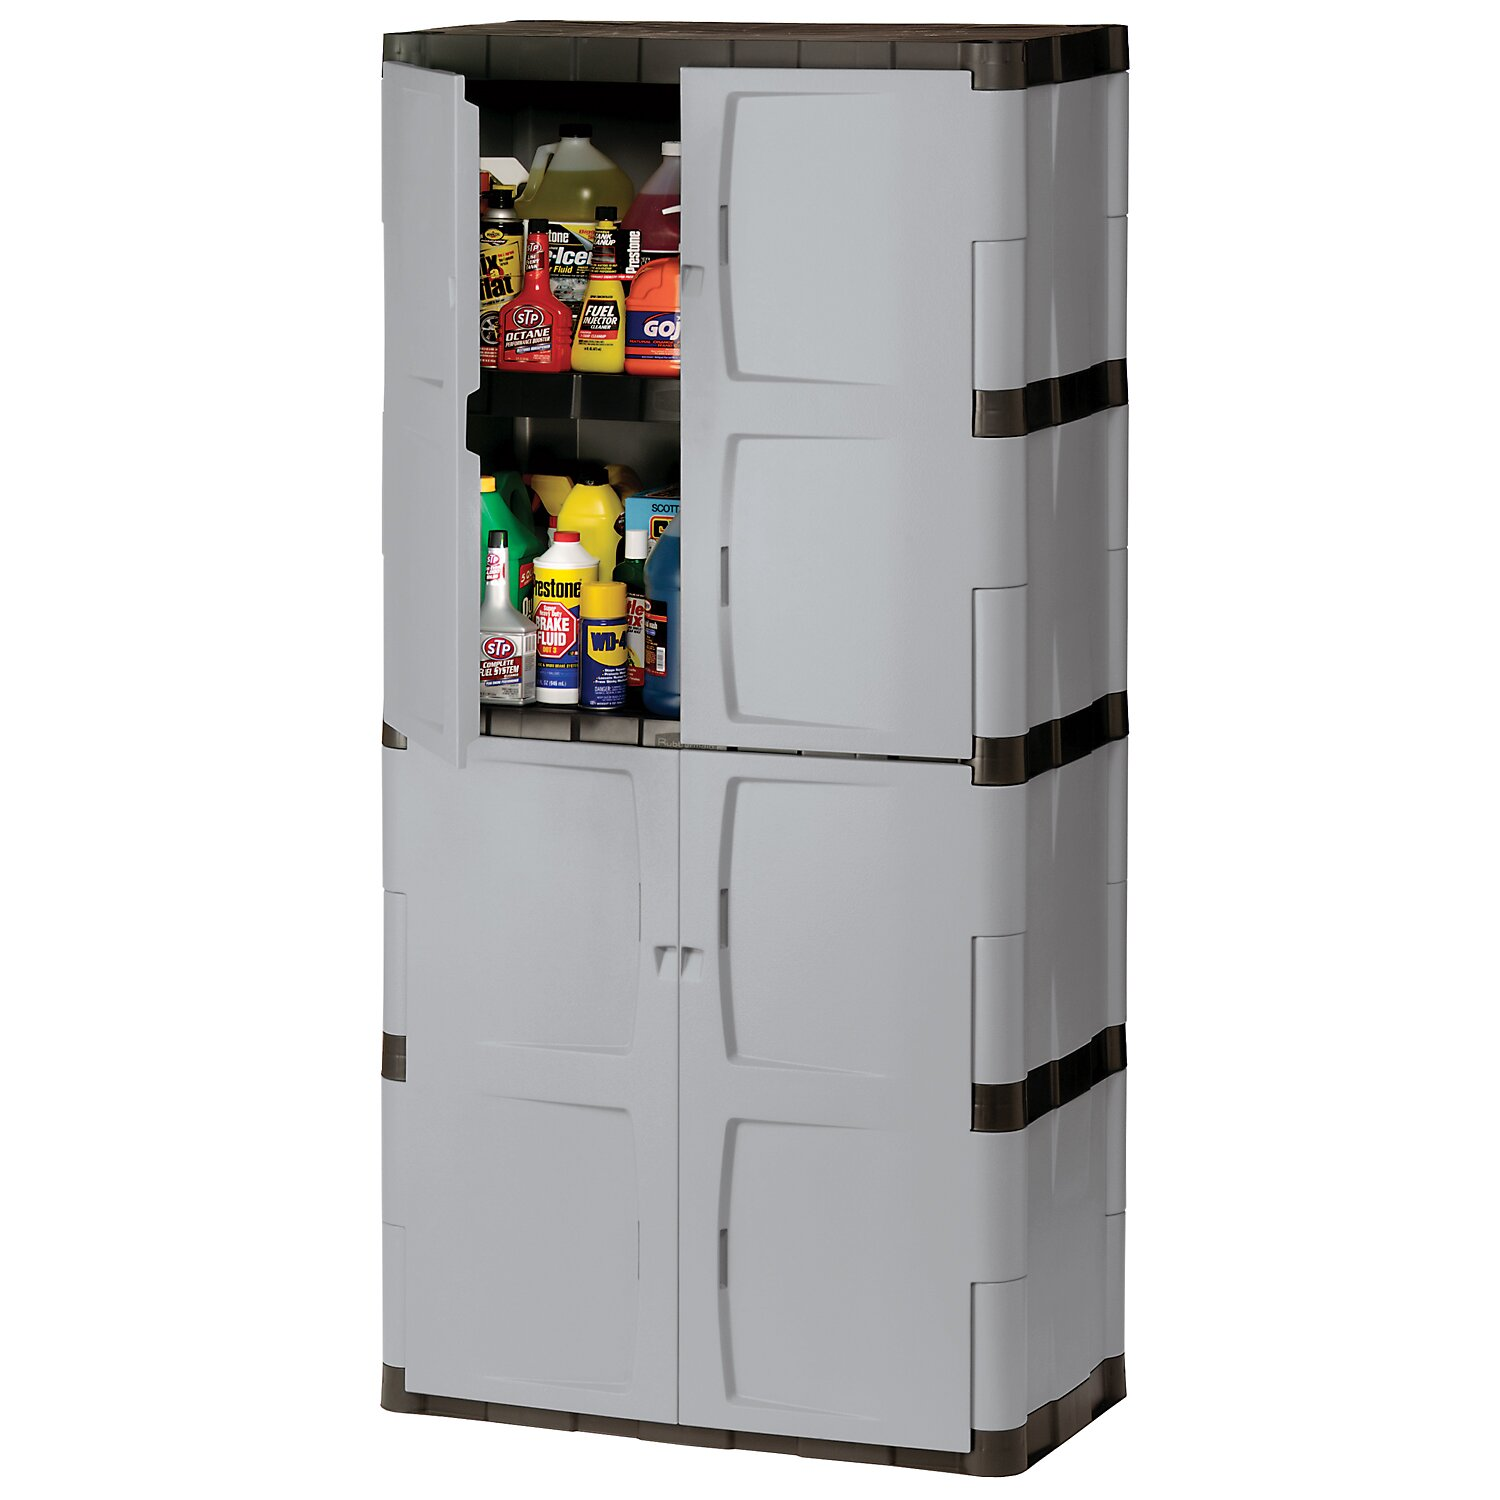 Resin Utility Cabinet Rubbermaid 72 H X 36 W X 18 D Full Double Door Cabinet